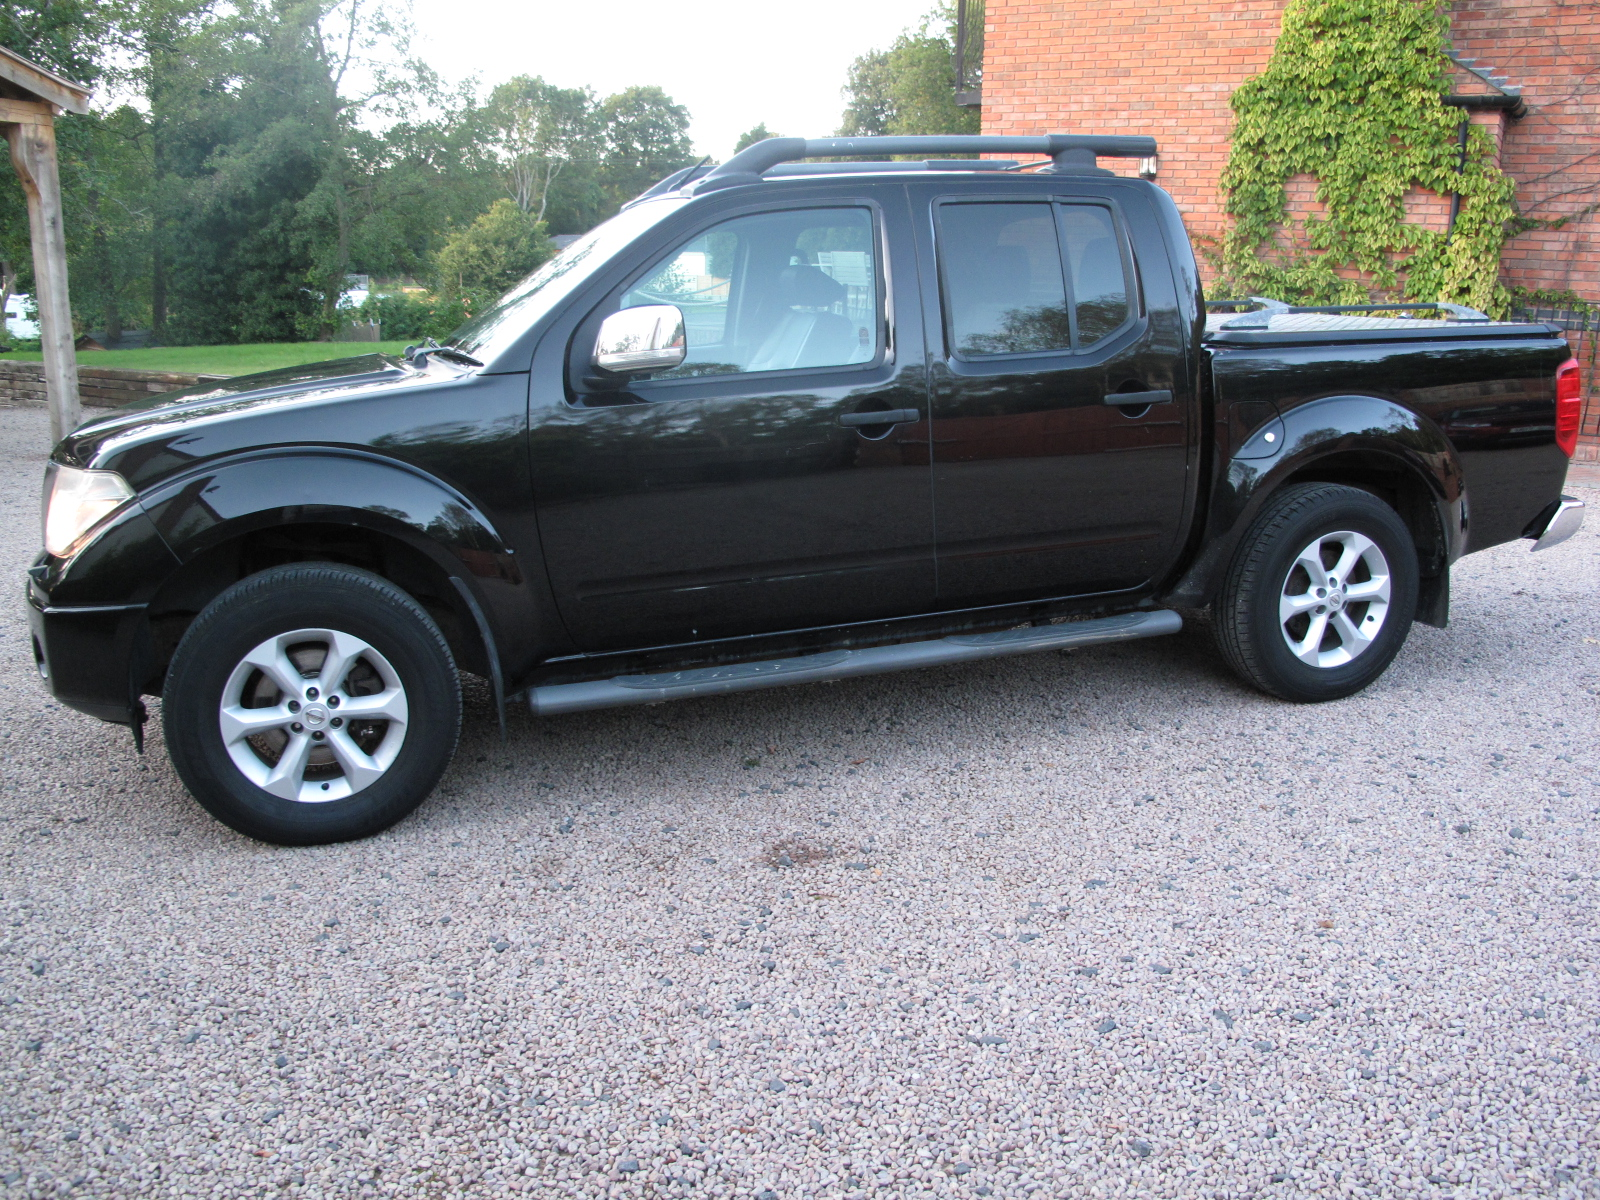 2010 59 Nissan Navara 2.5 dCi Tekna Double Cab Pickup EXCELLENT CONDITION THROUGHOUT! NO VAT! full